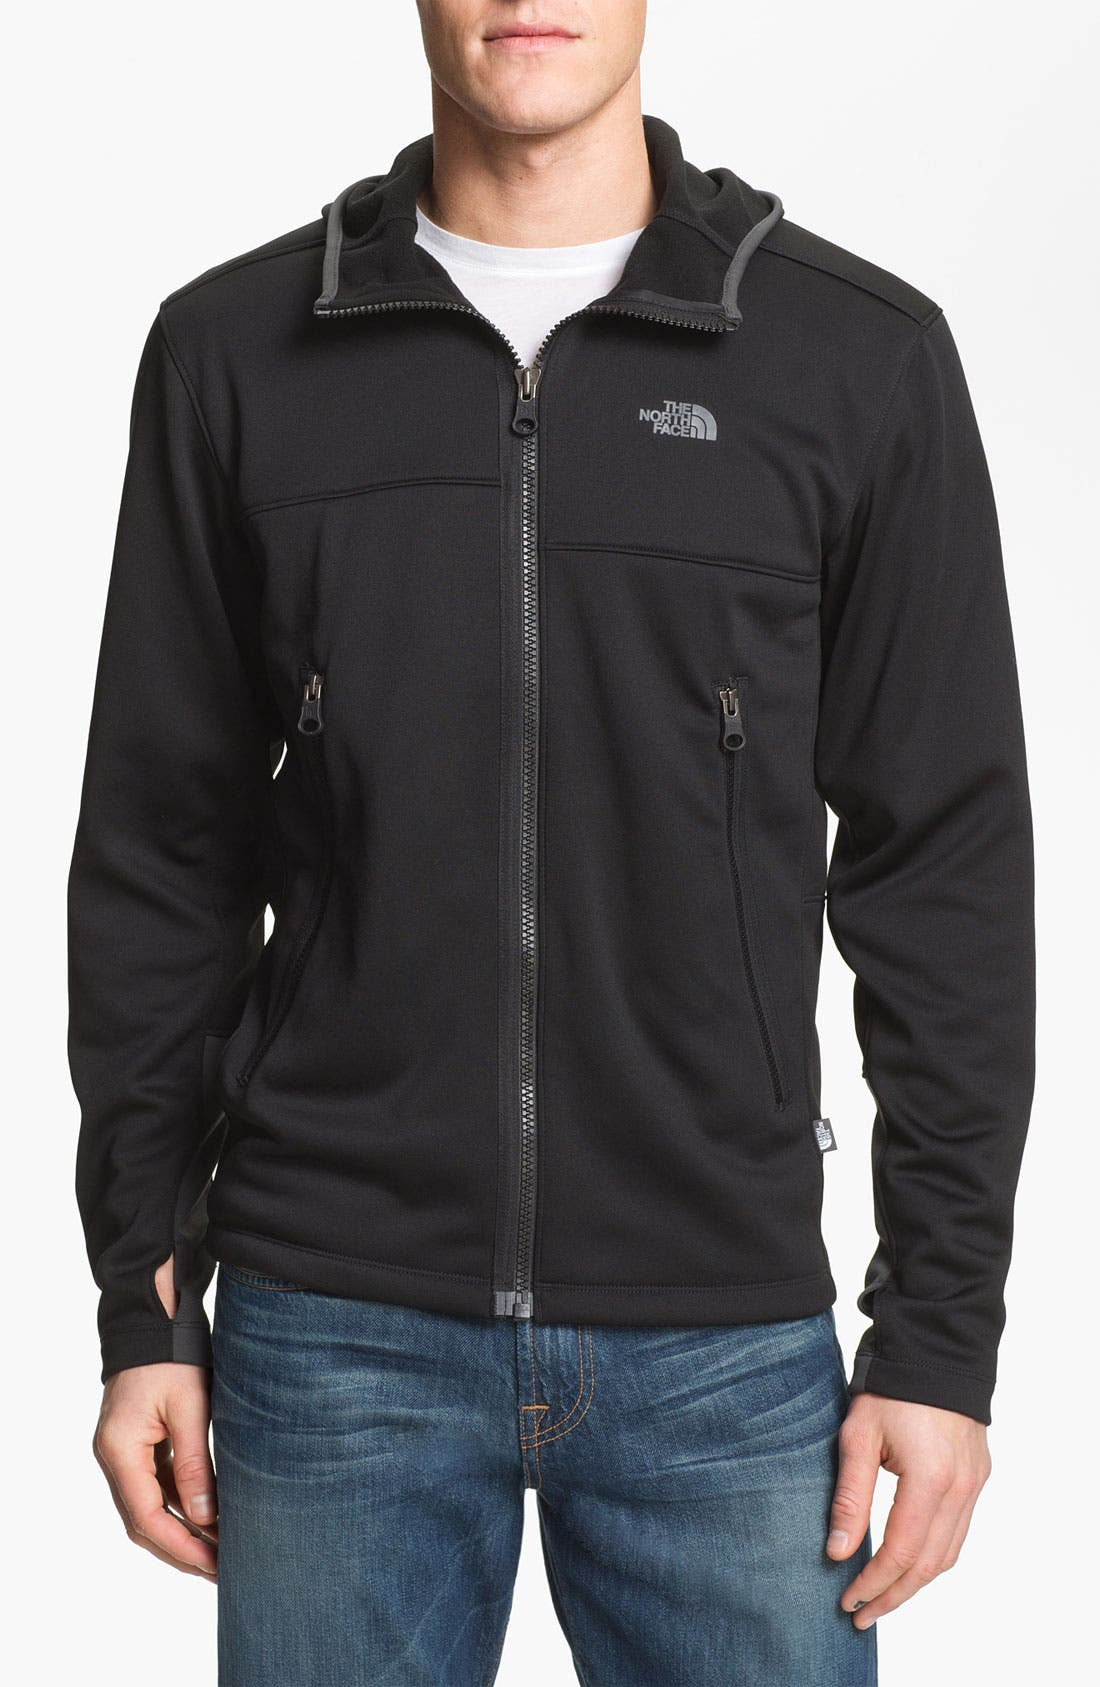 Alternate Image 1 Selected - The North Face 'Canyonlands' Zip Jacket